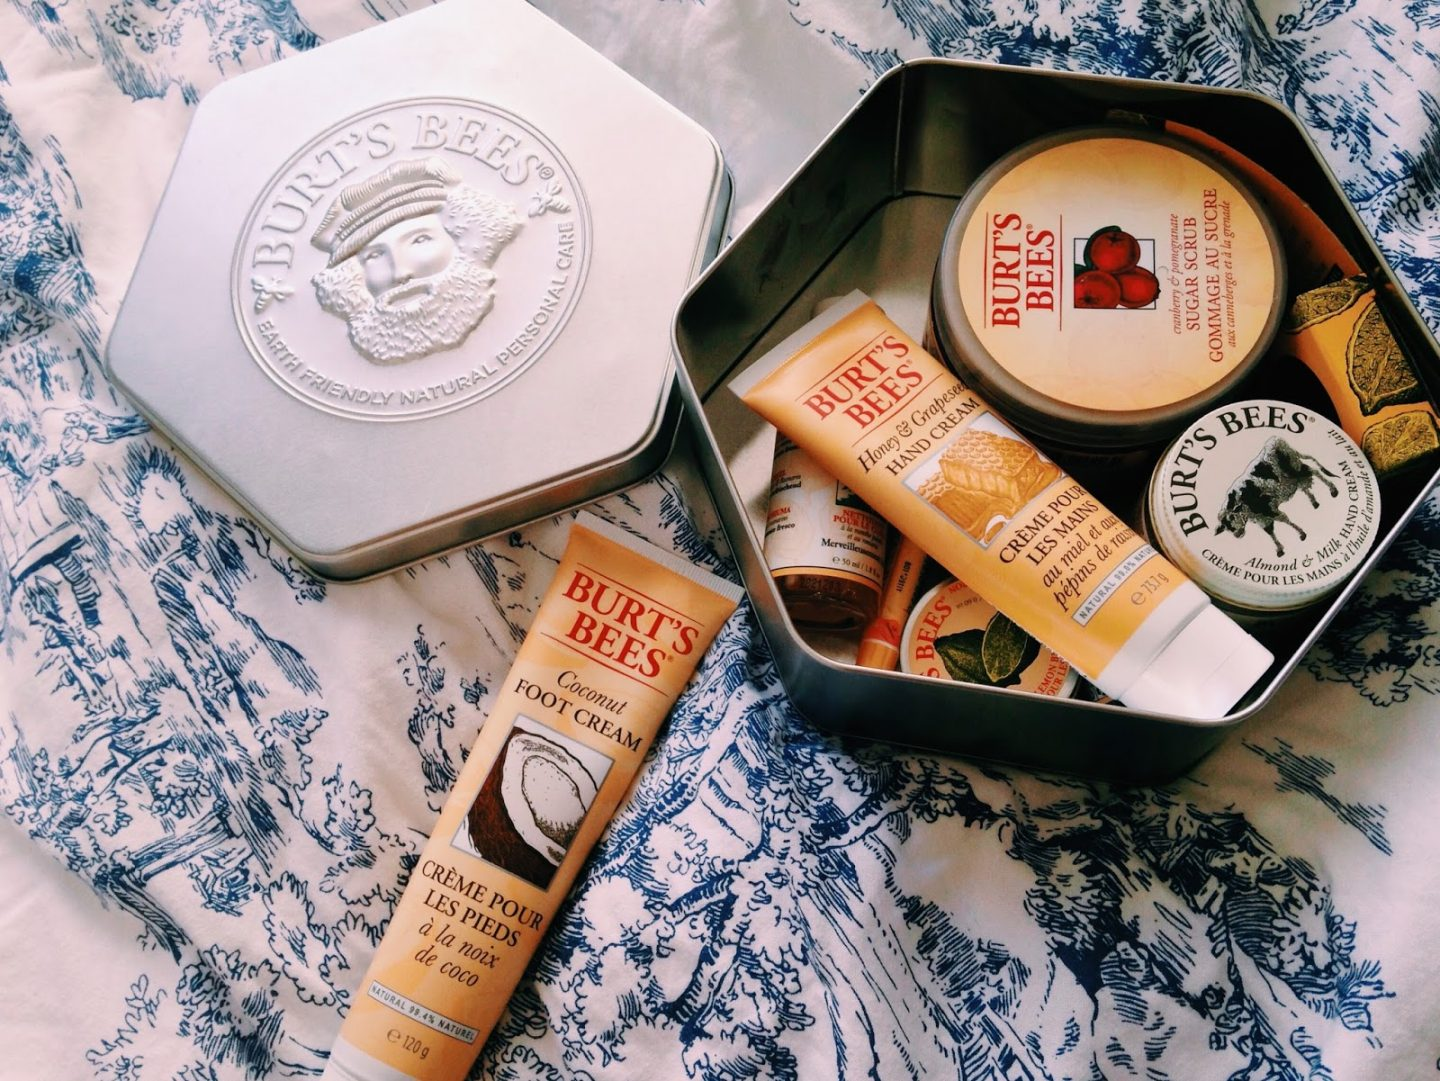 Gift box of Burt's Bees products